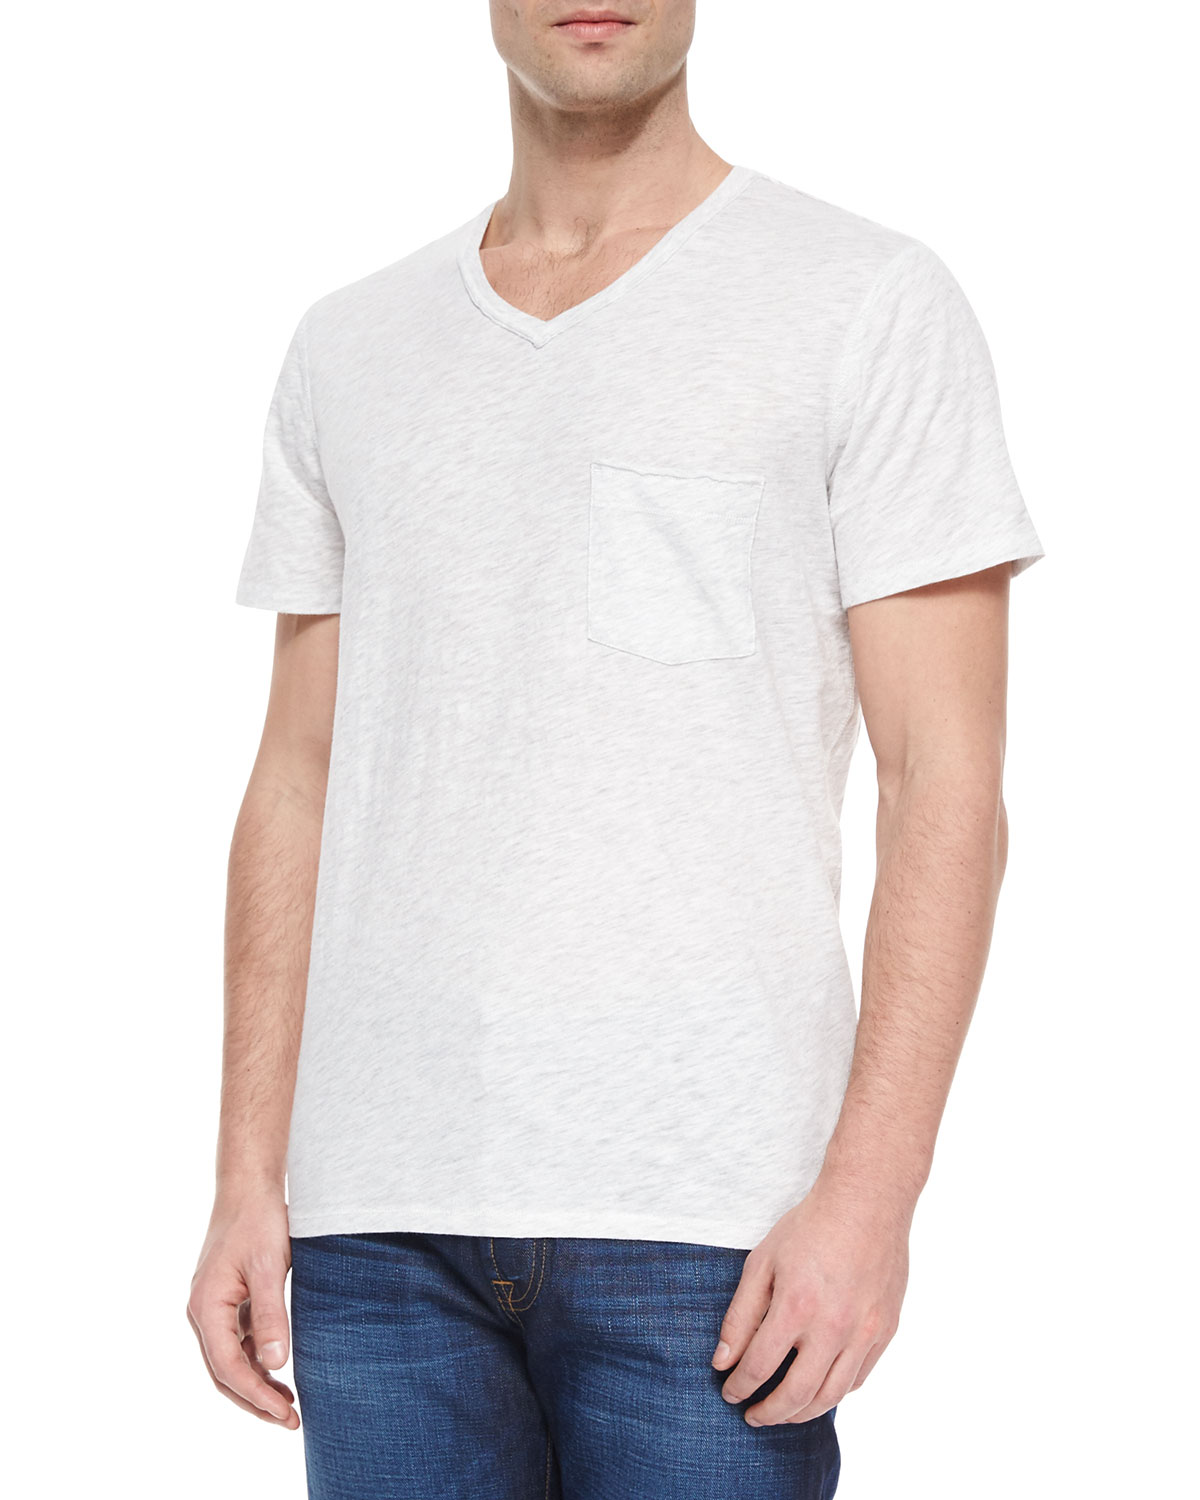 Raw-Edge V-Neck T-Shirt, White